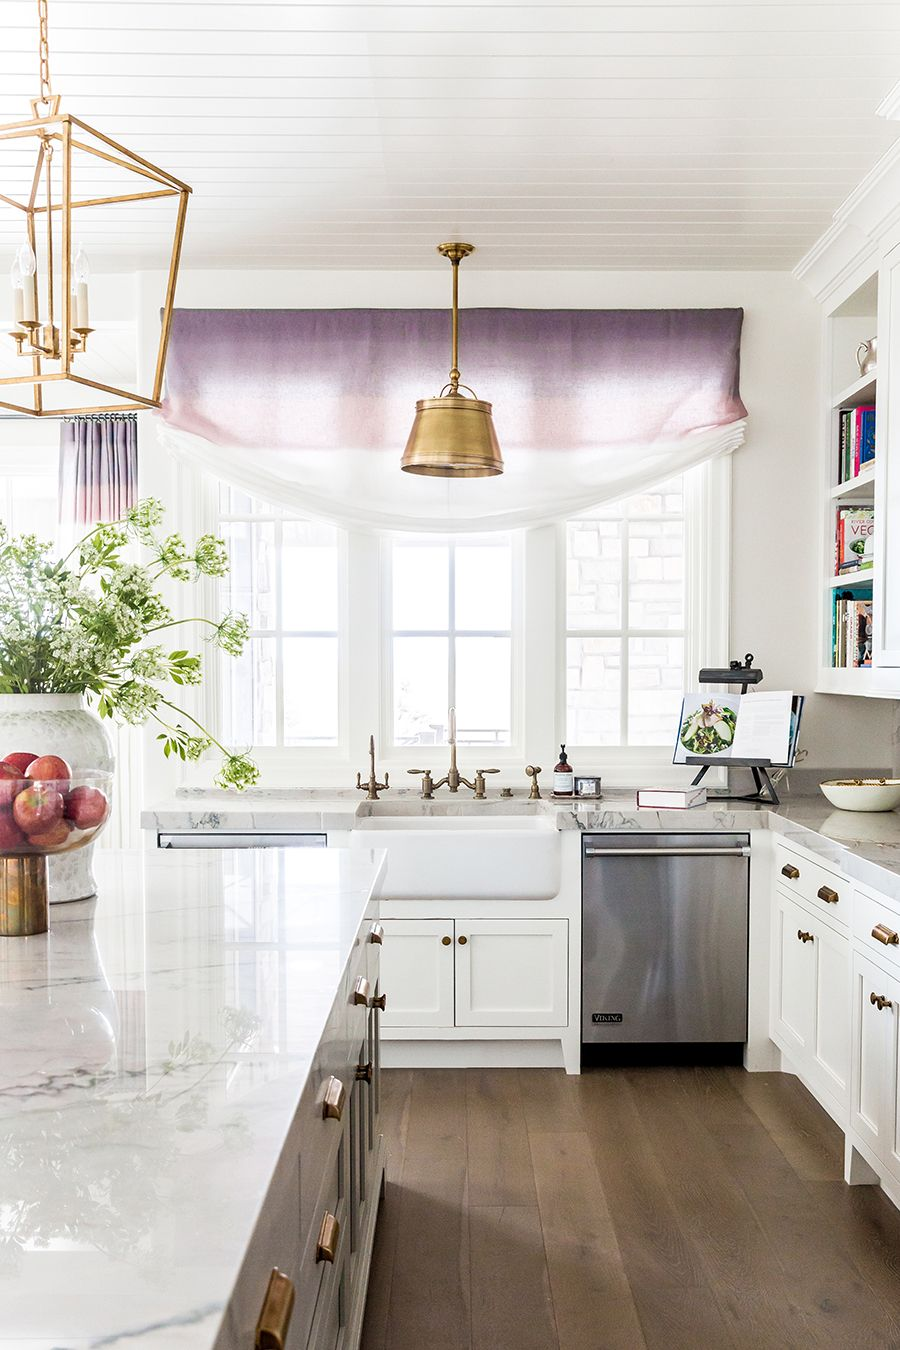 Gourmet kitchen features a farmhouse sink fitted